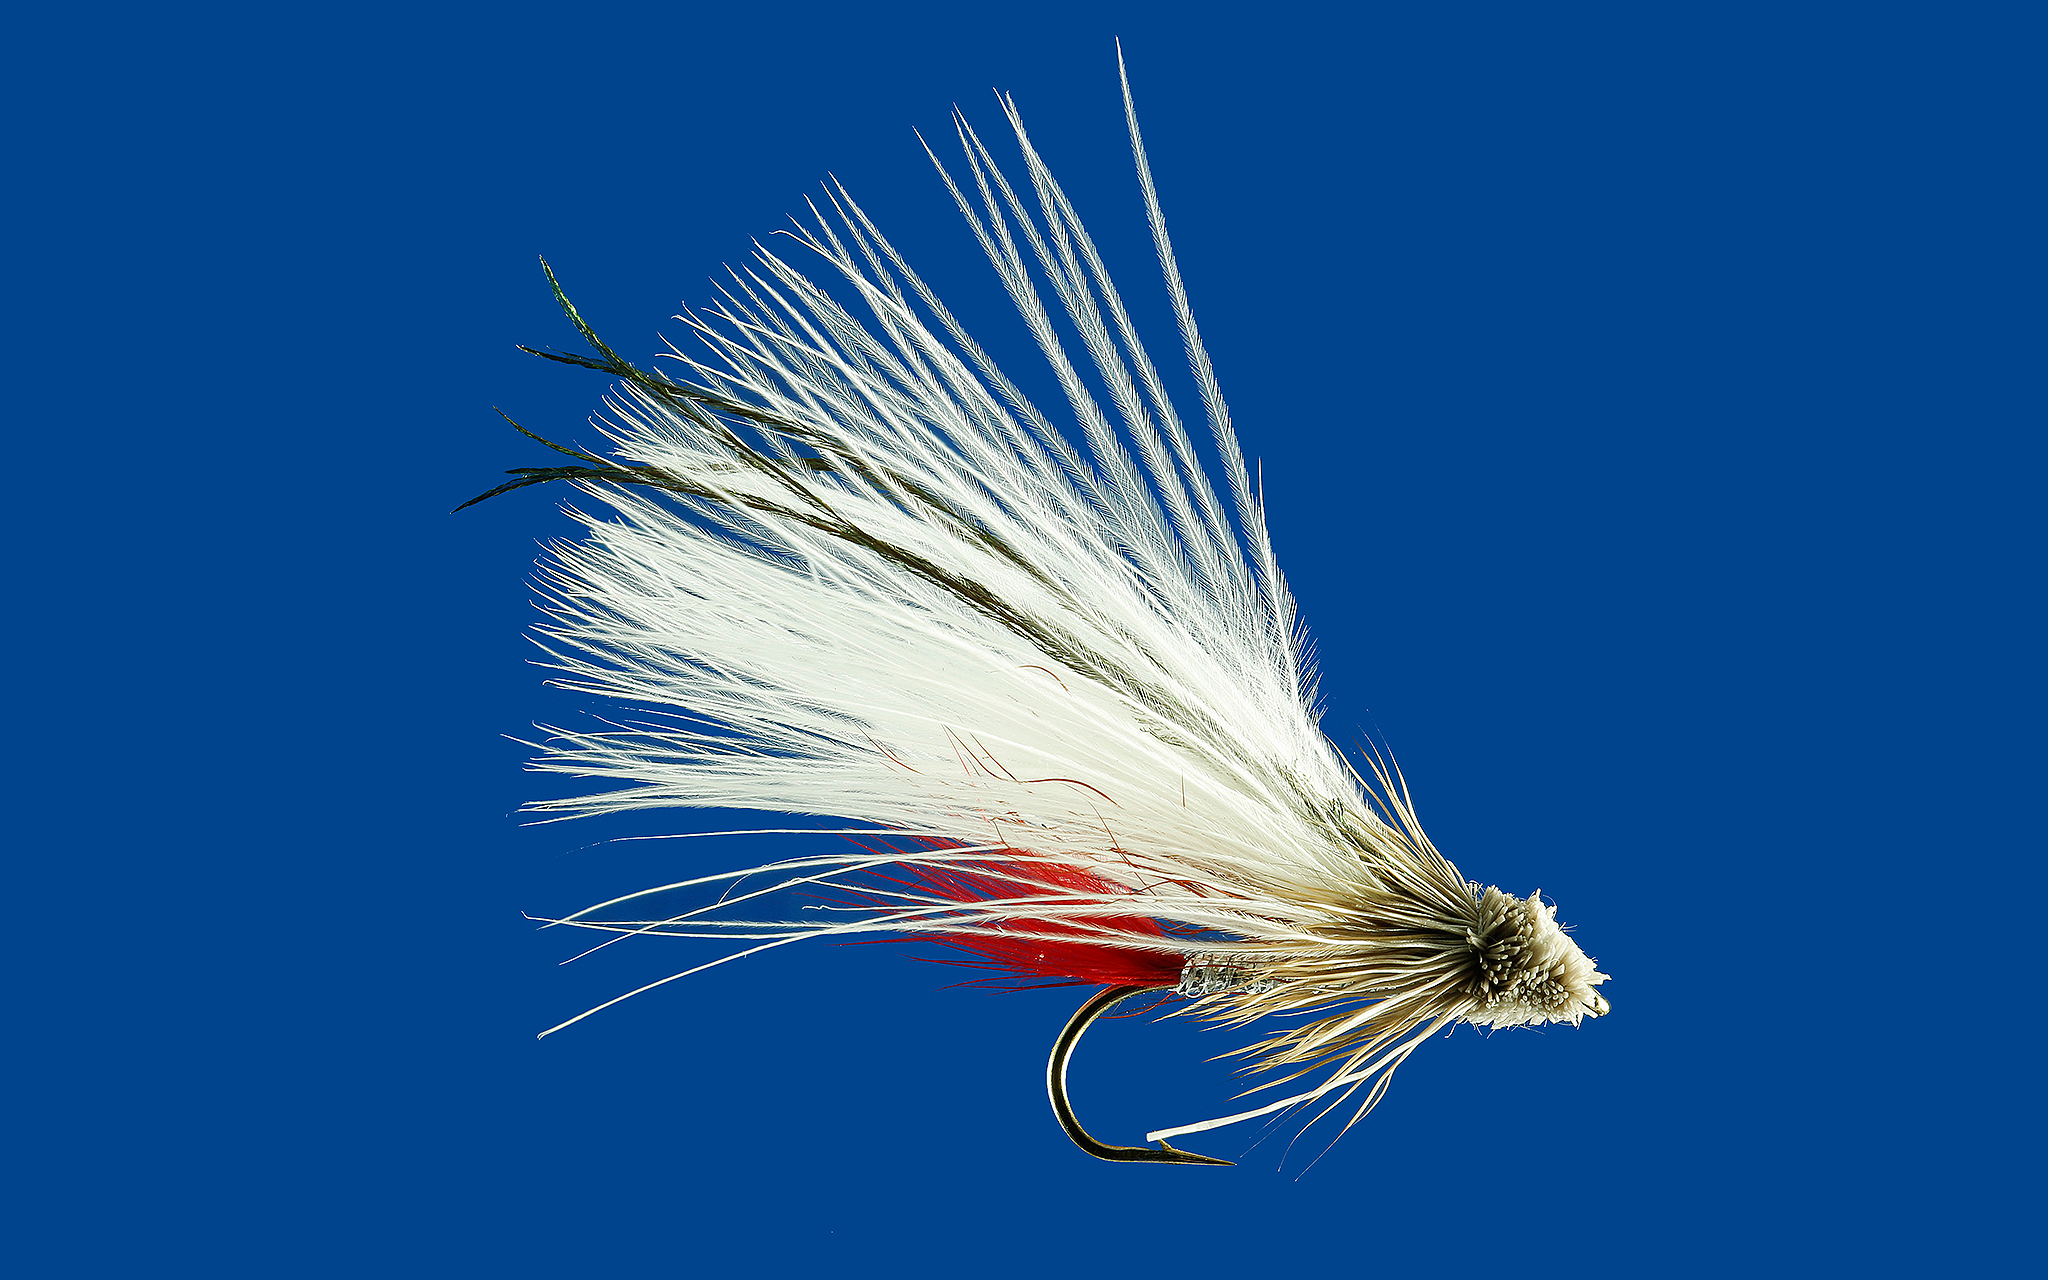 The White Marabou Muddler